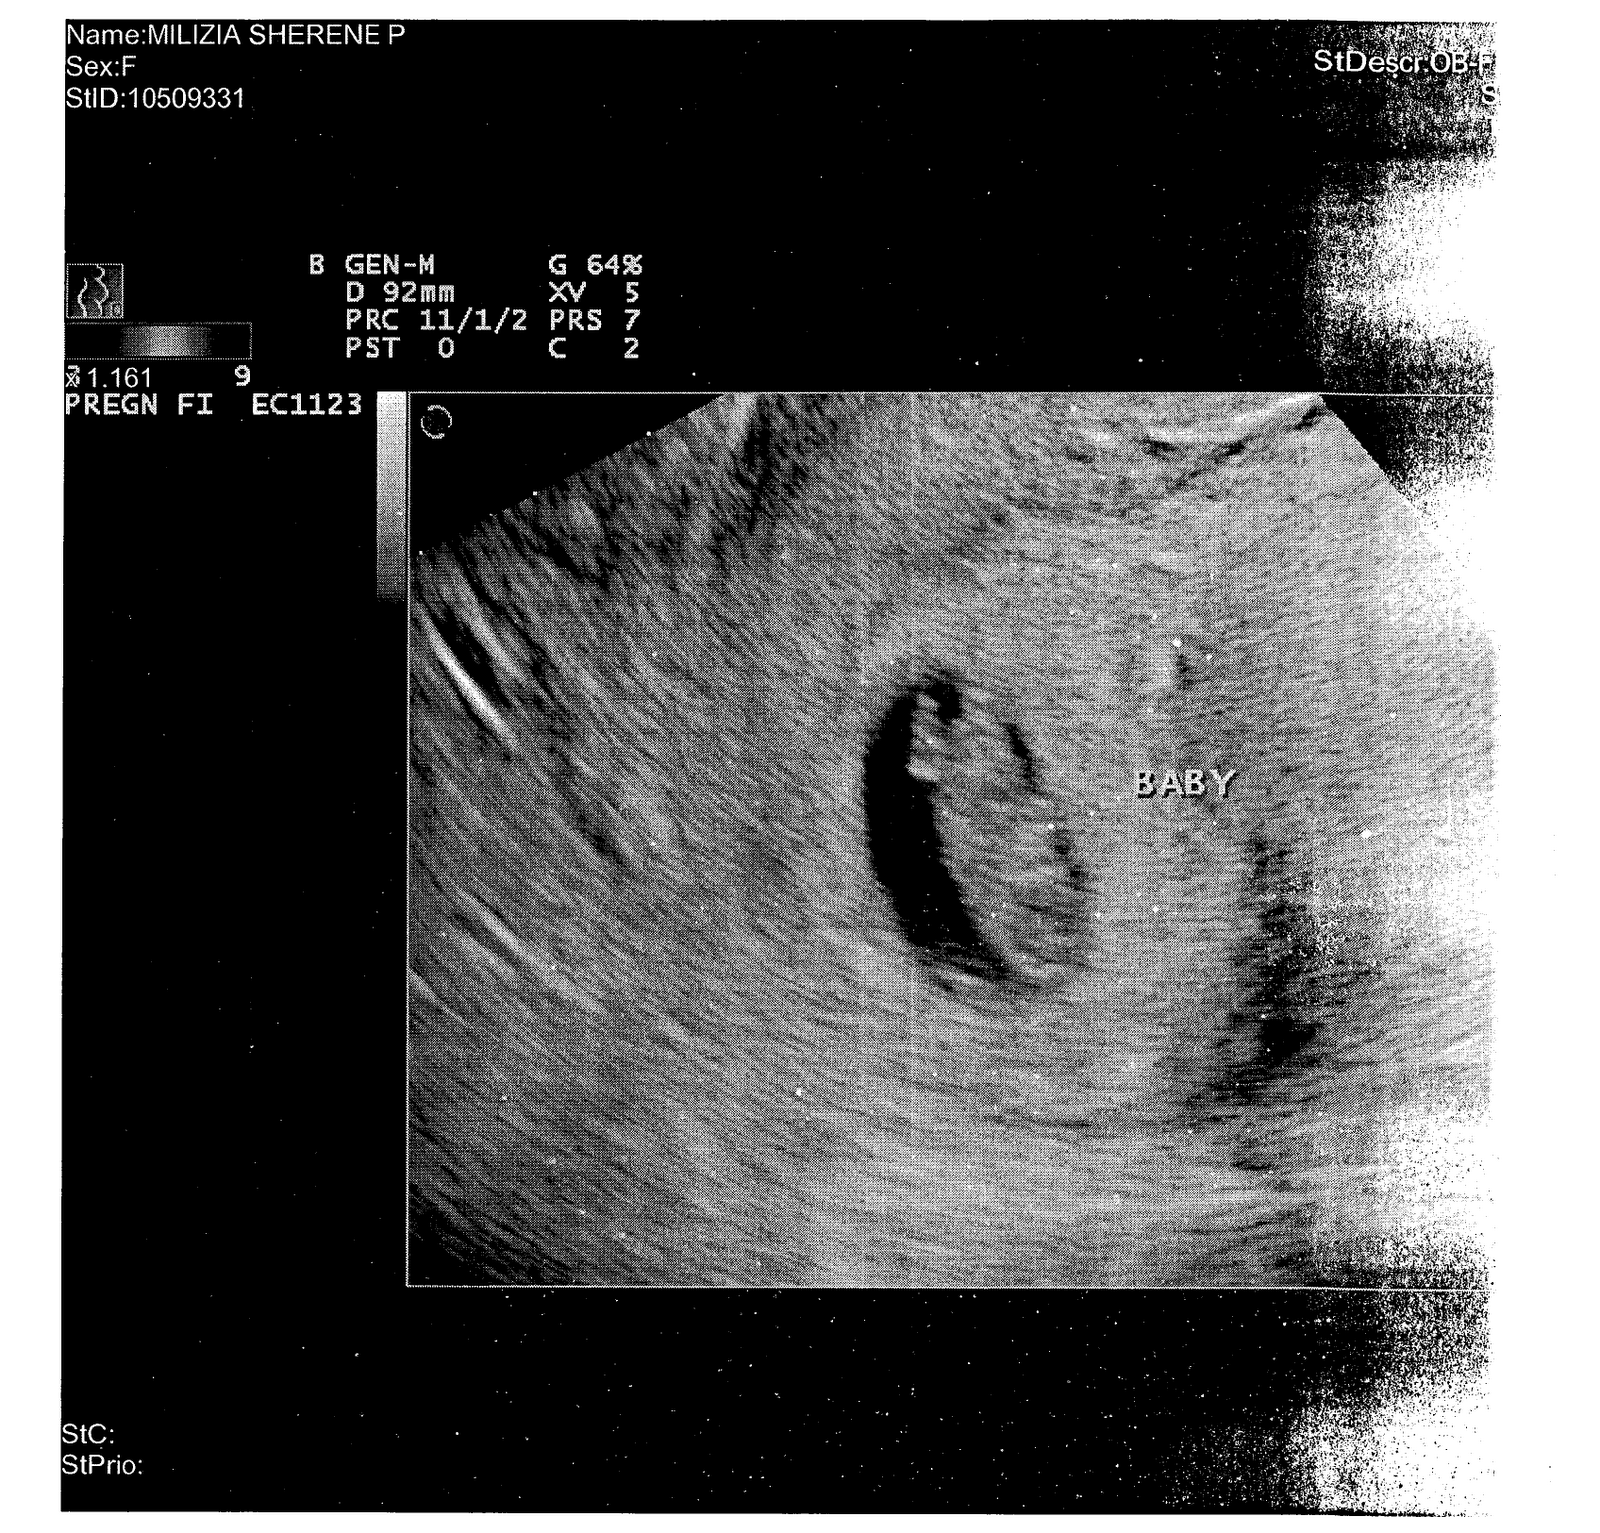 Baby Ultrasound When Is The First Baby Ultrasound